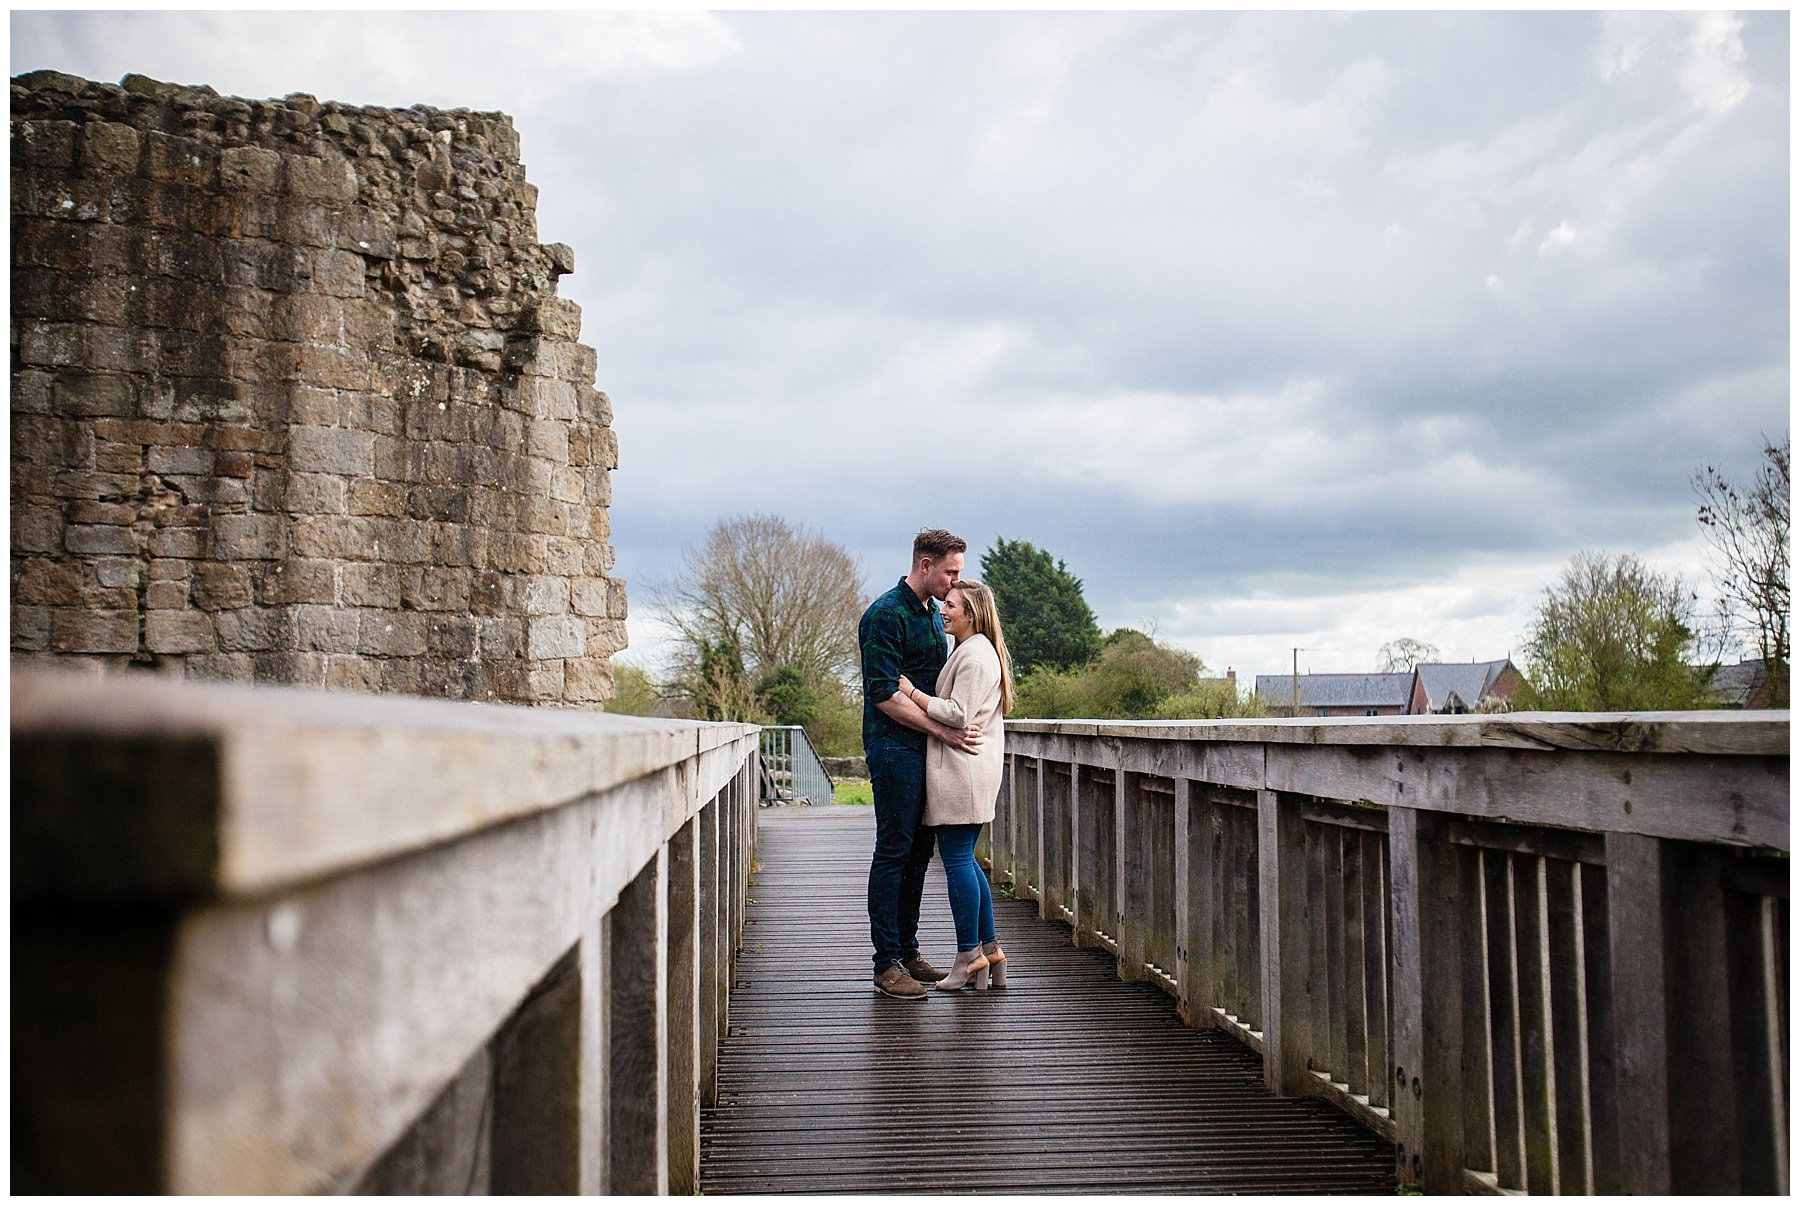 happy couple chatting on the bridge at whttington castle- charlotte giddings photography